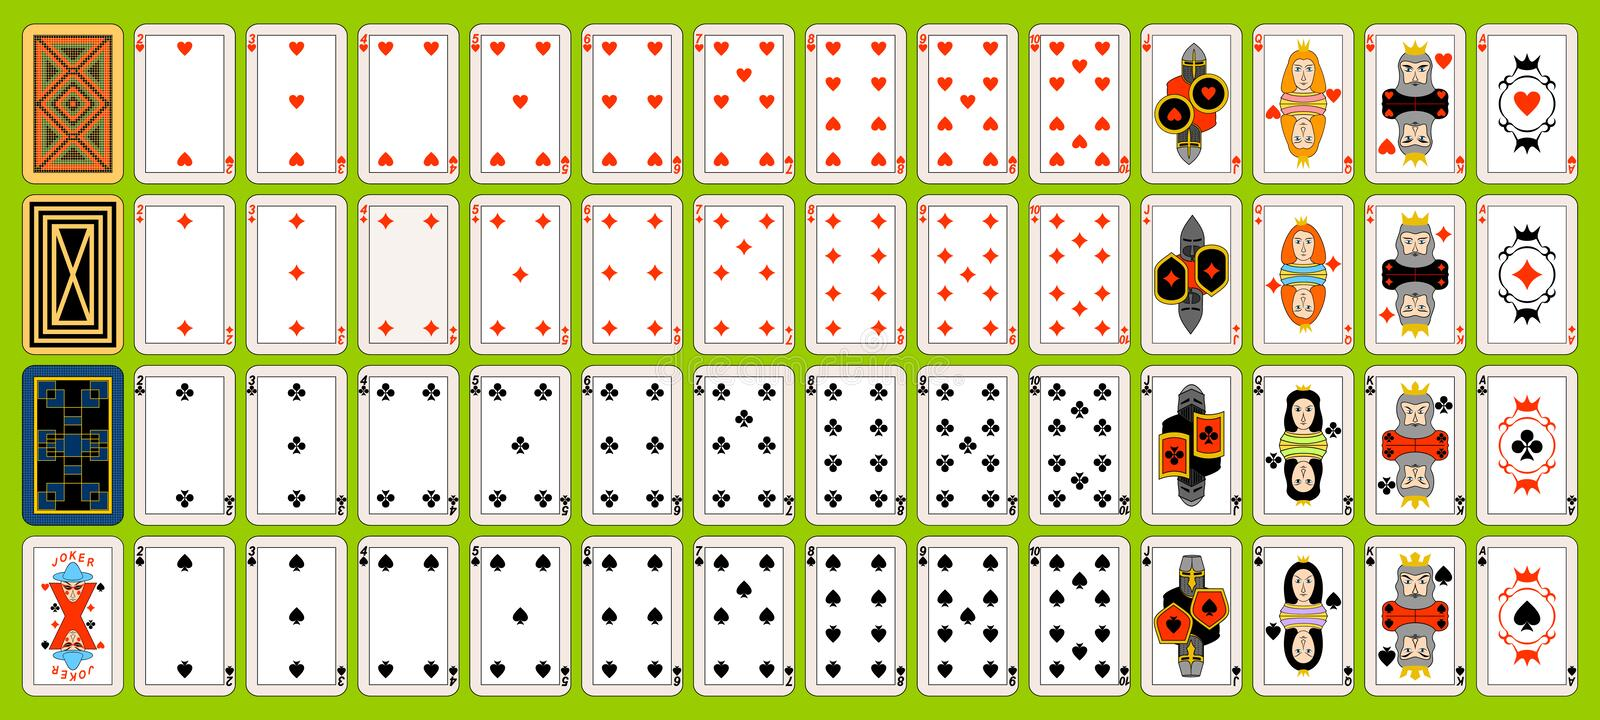 Set of playing cards. royalty free illustration